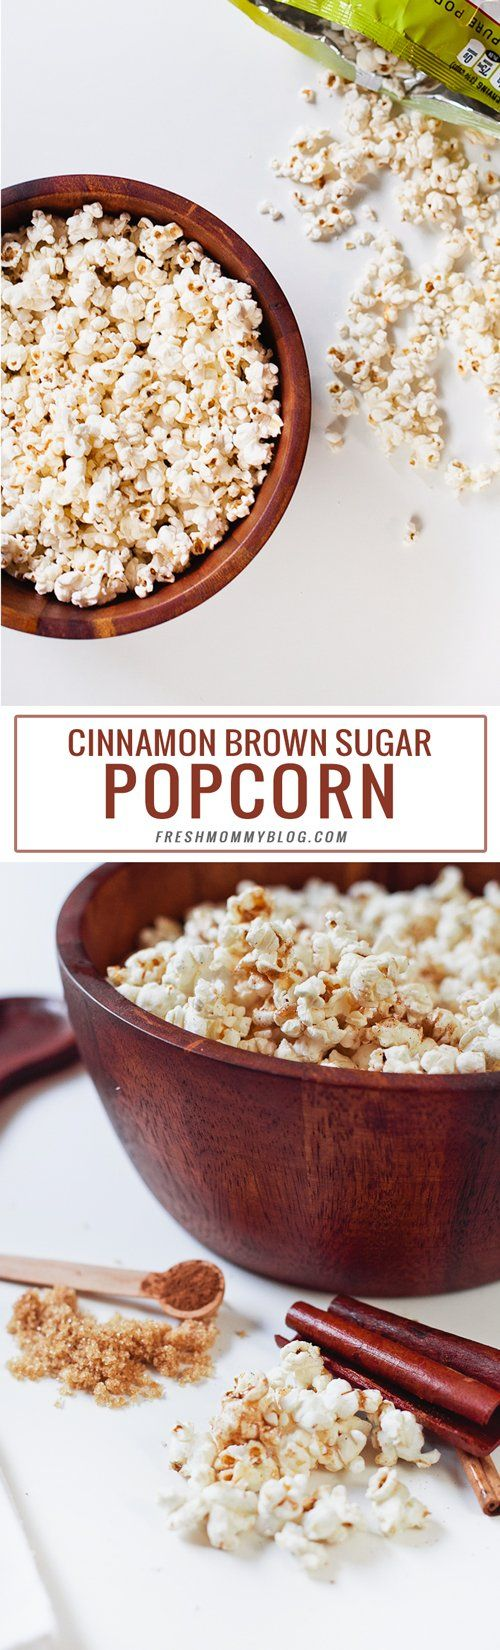 Cinnamon Brown Sugar Popcorn, This Cinnamon Brown Sugar Popcorn is the perfect snack for satisfying your sweet tooth without wrecking your diet or leaving you feeling guilty. Low calorie and easy to make. Perfect for National Popcorn Day! |  FreshMommyBlog.com